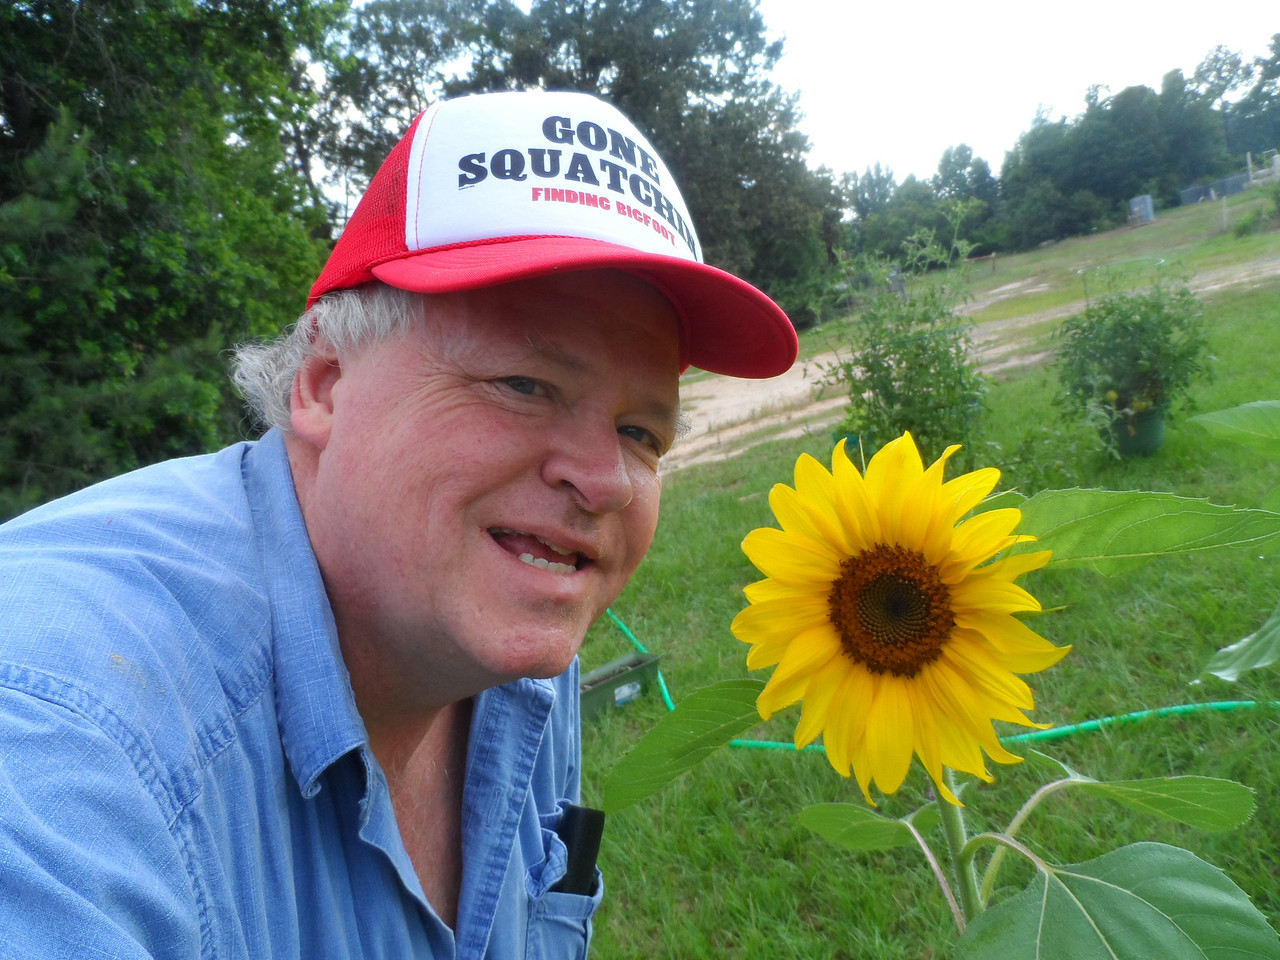 Dad likes this sunflower.